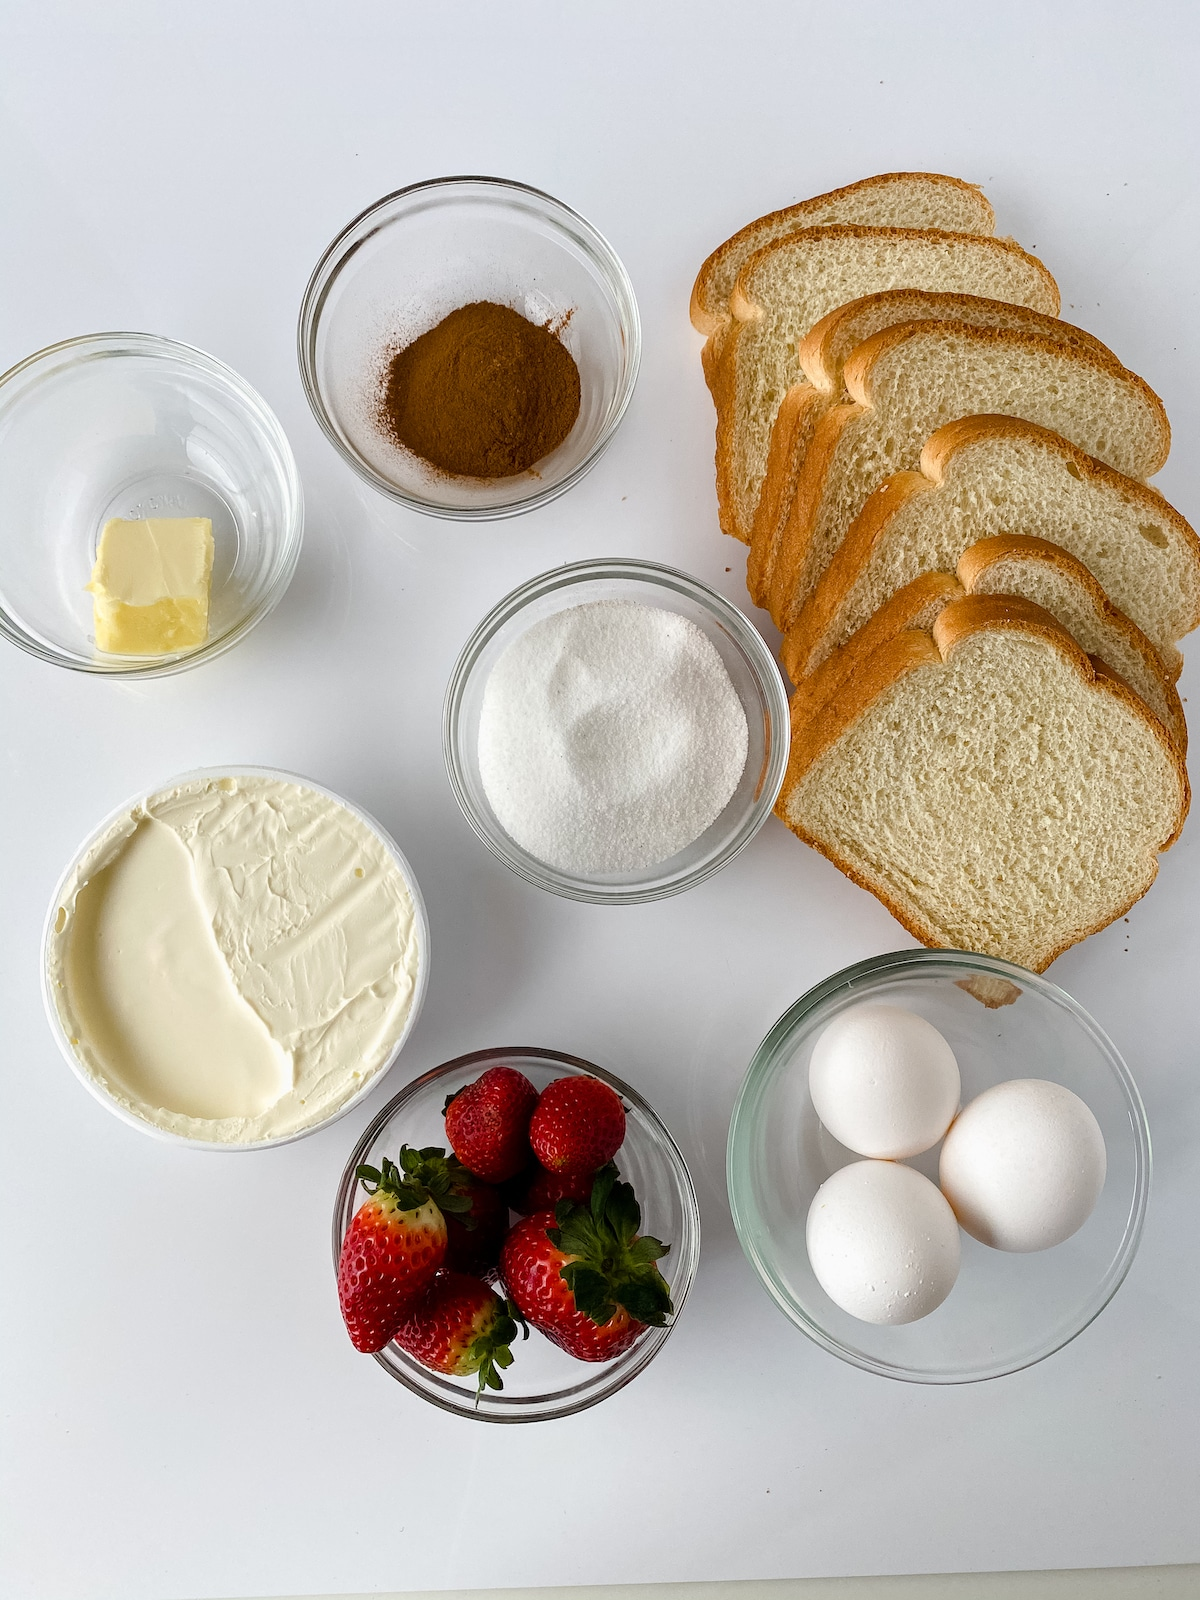 Ingredients for Strawberry stuffed French toast in glass bowls on white surface